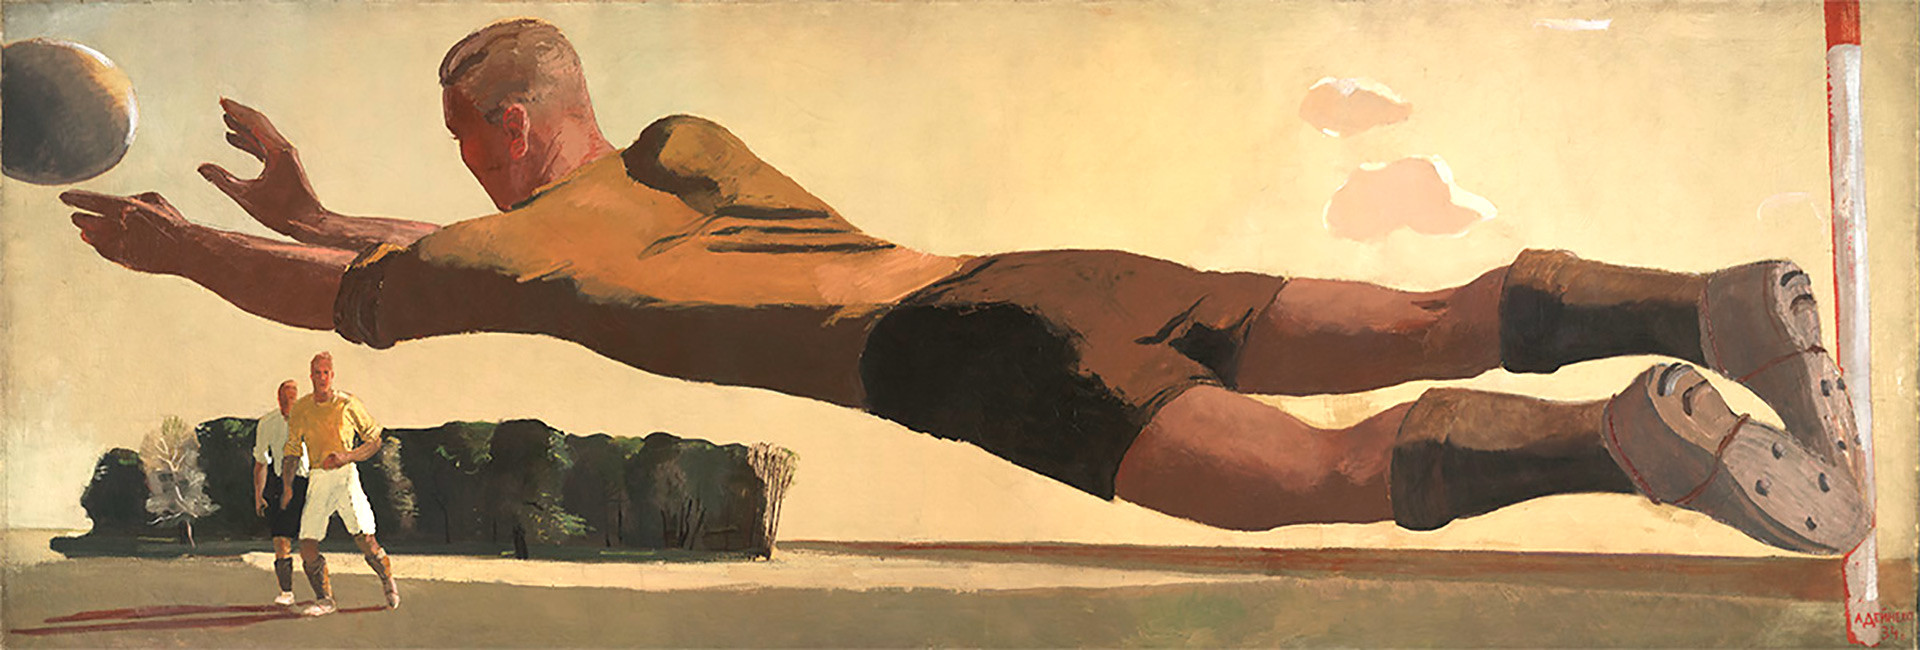 'Goalkeeper' (1934) by Alexander Deineka